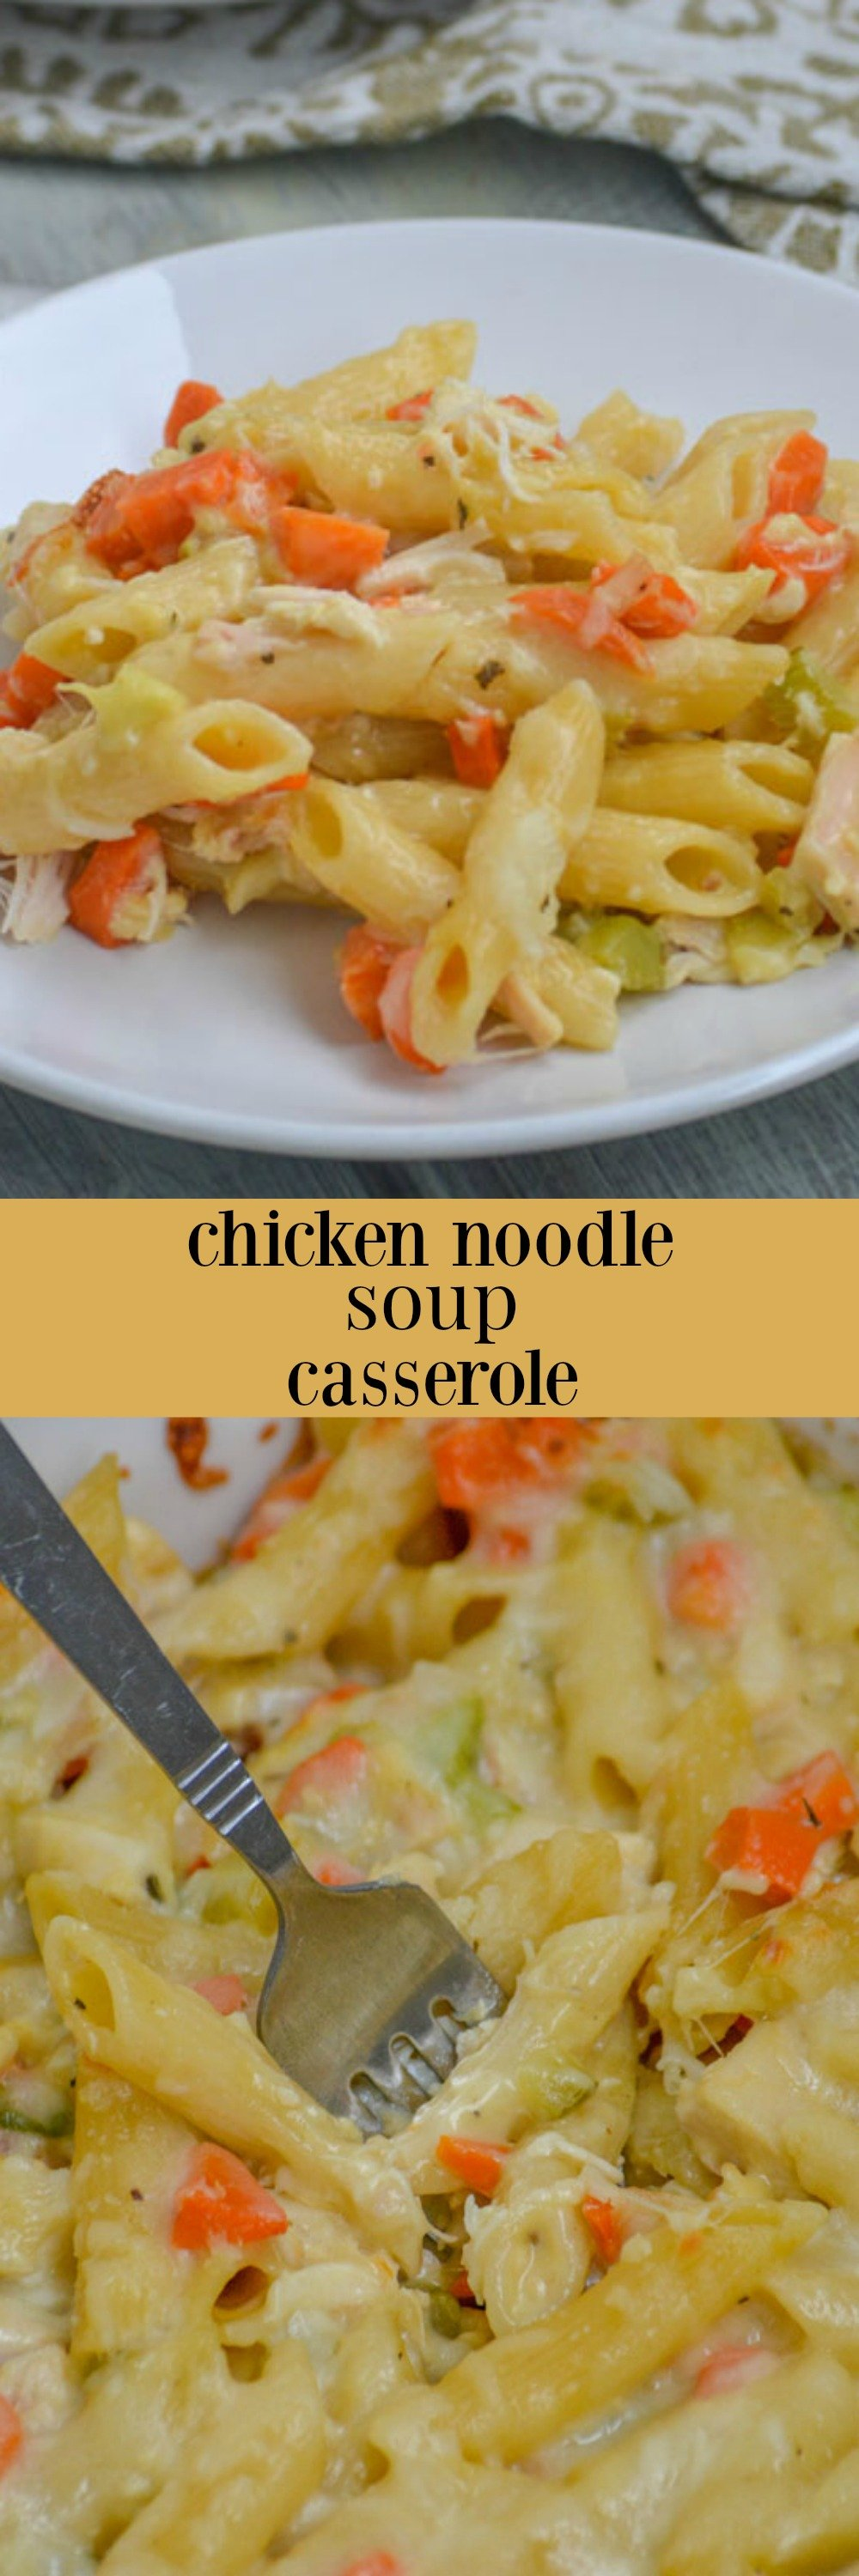 This creamy, cheesy Chicken Noodle Soup Casserole is the magical, home made (with love) cure for whatever ails you. Serve up a warm bowlful for lunch or dinner, and send your worries packin'!